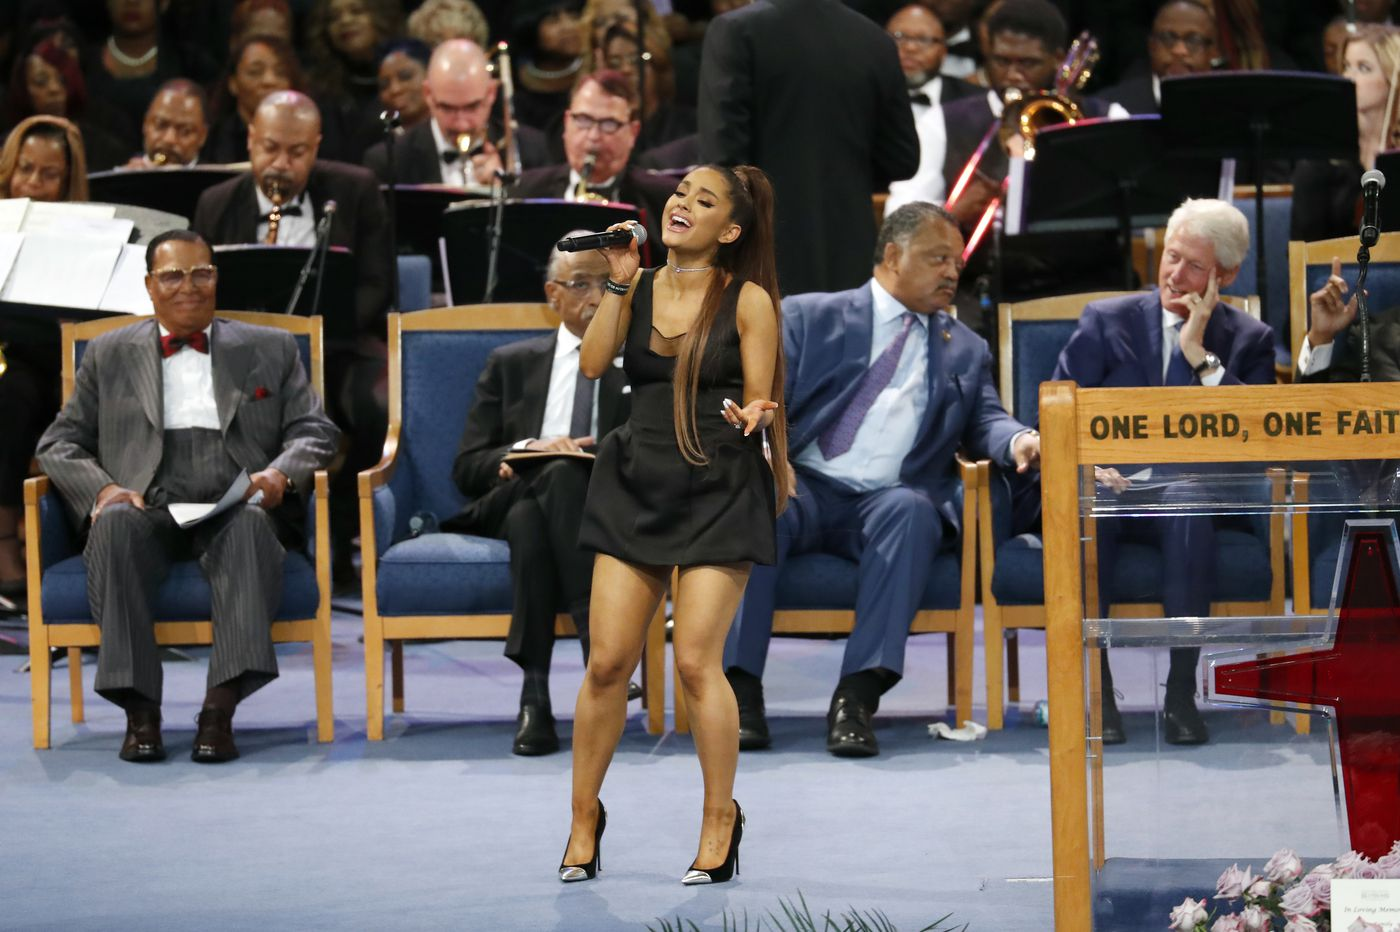 'Vulgar exercises in self-indulgence': Aretha Franklin, John McCain funerals showed how not to depart with dignity | Opinion